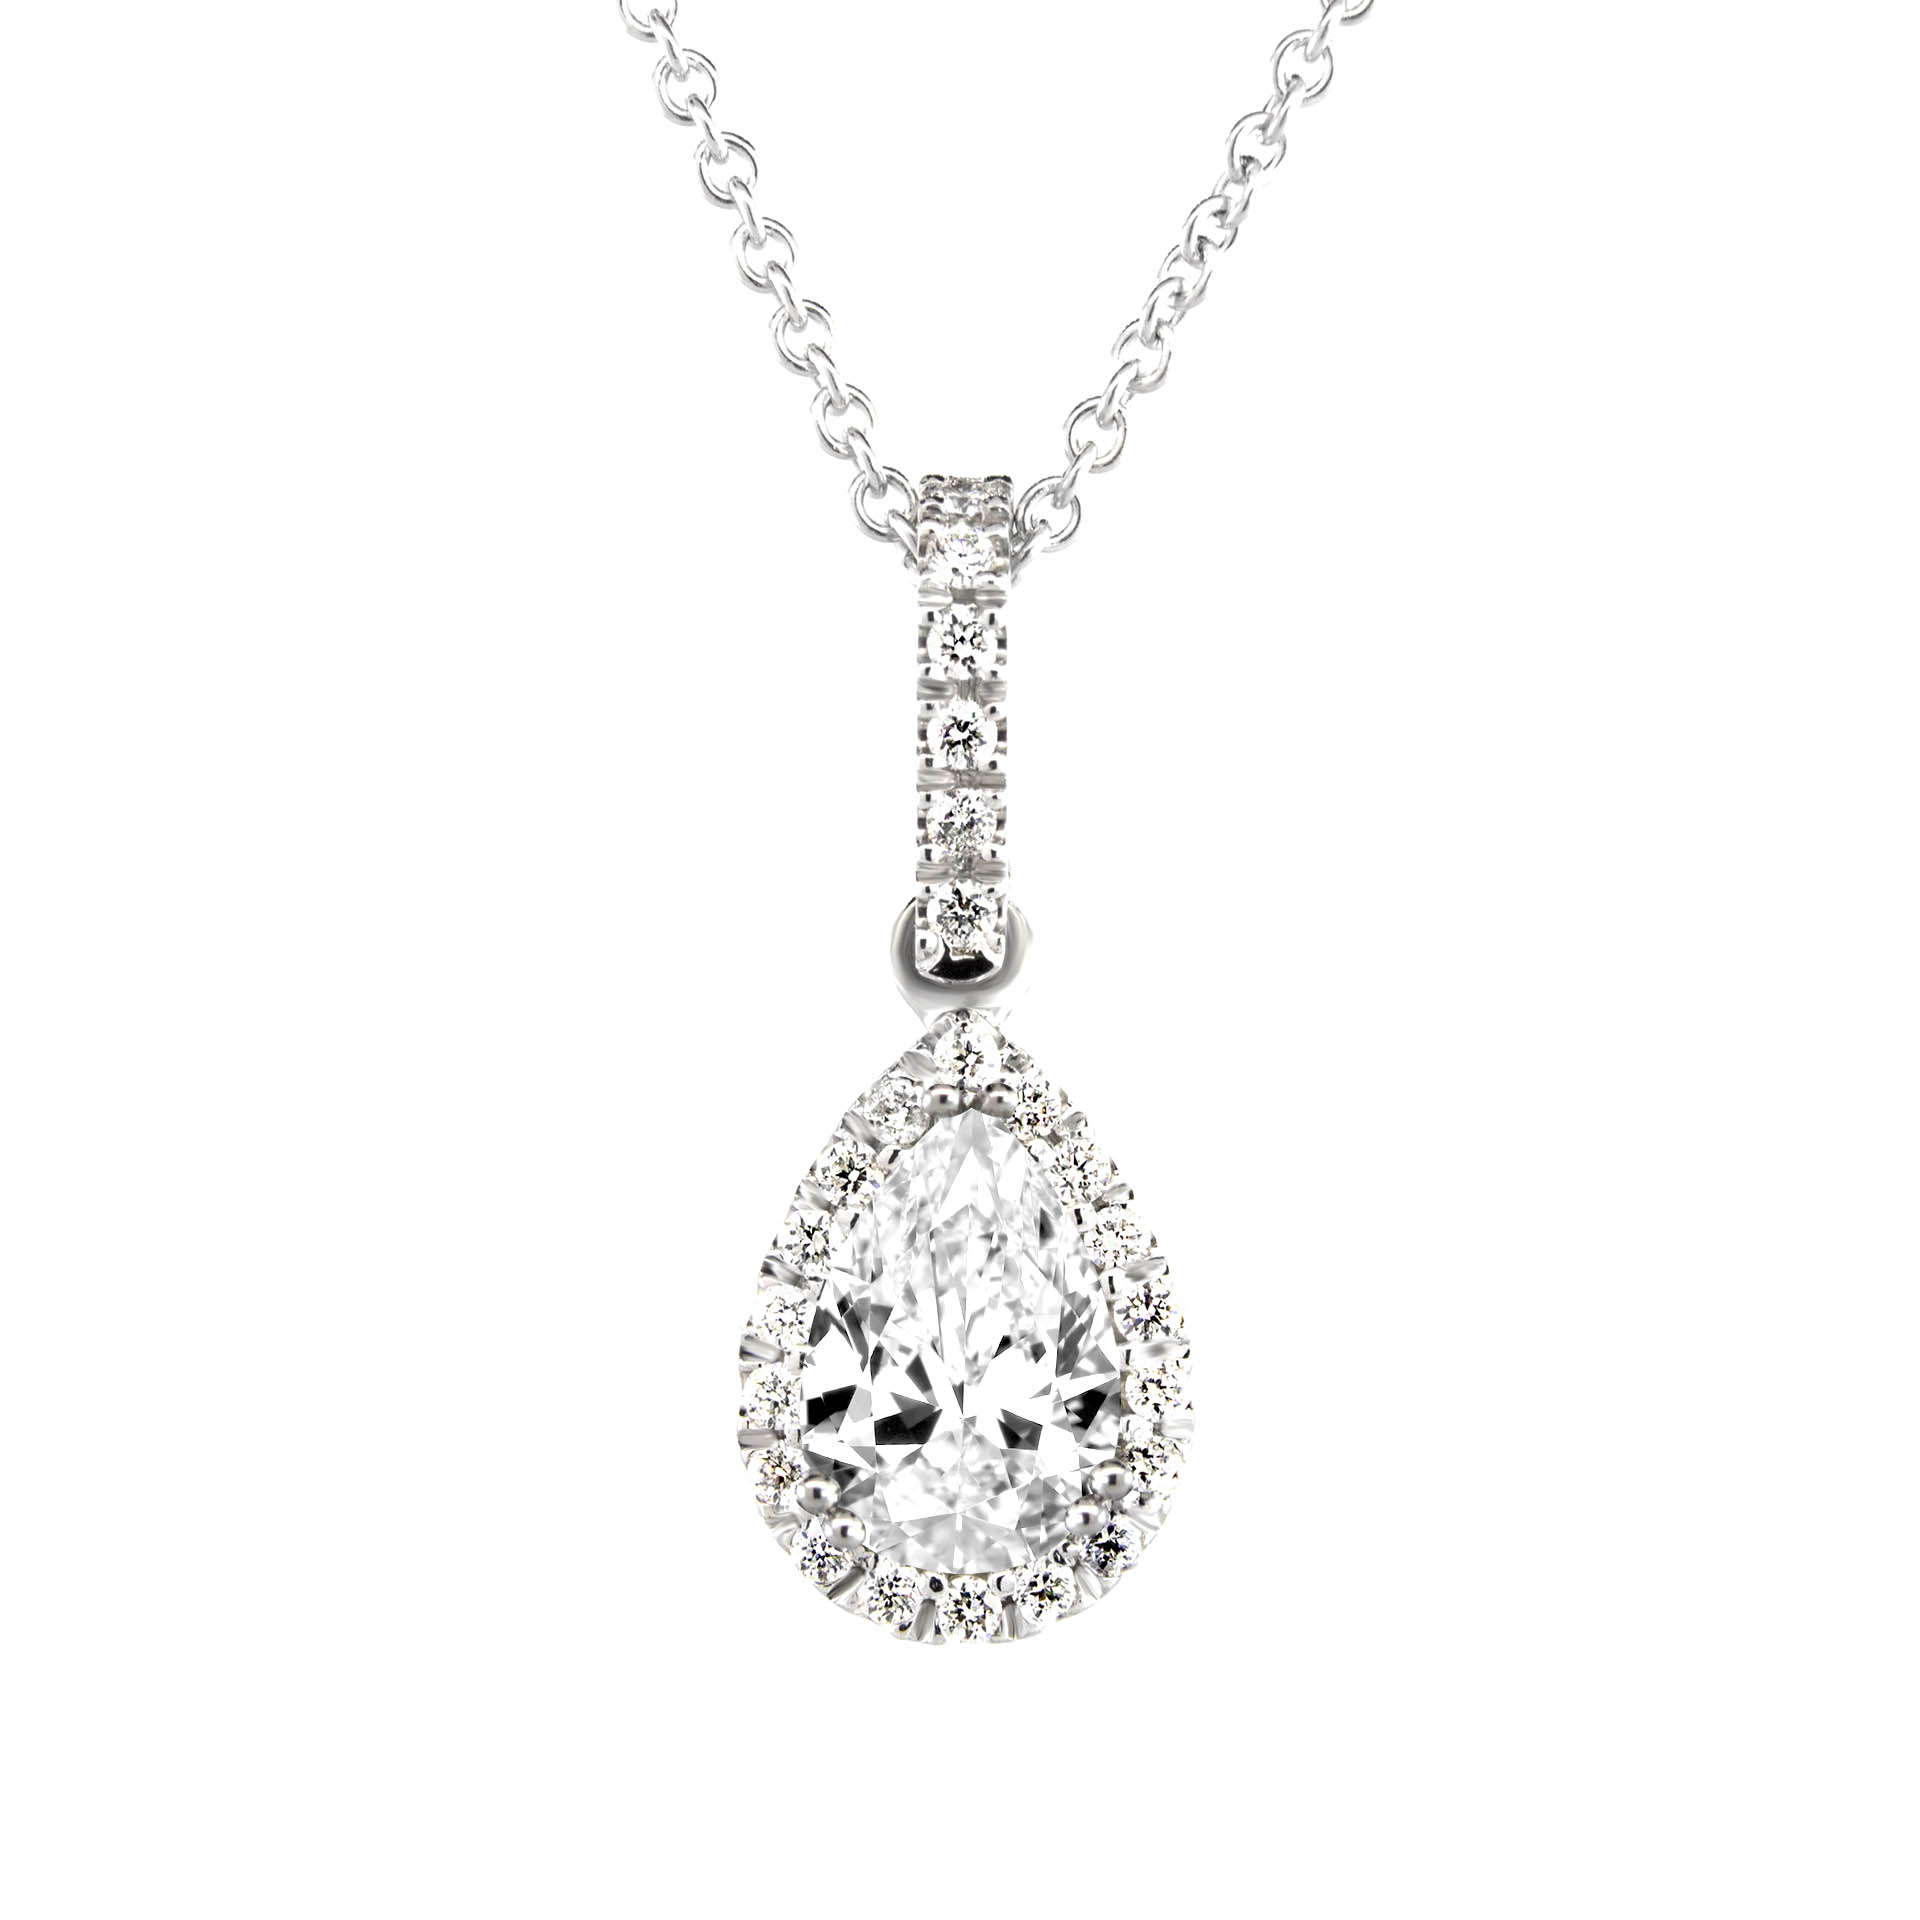 click diamond necklace halo pendant shaped image to enlarge pear shape carat